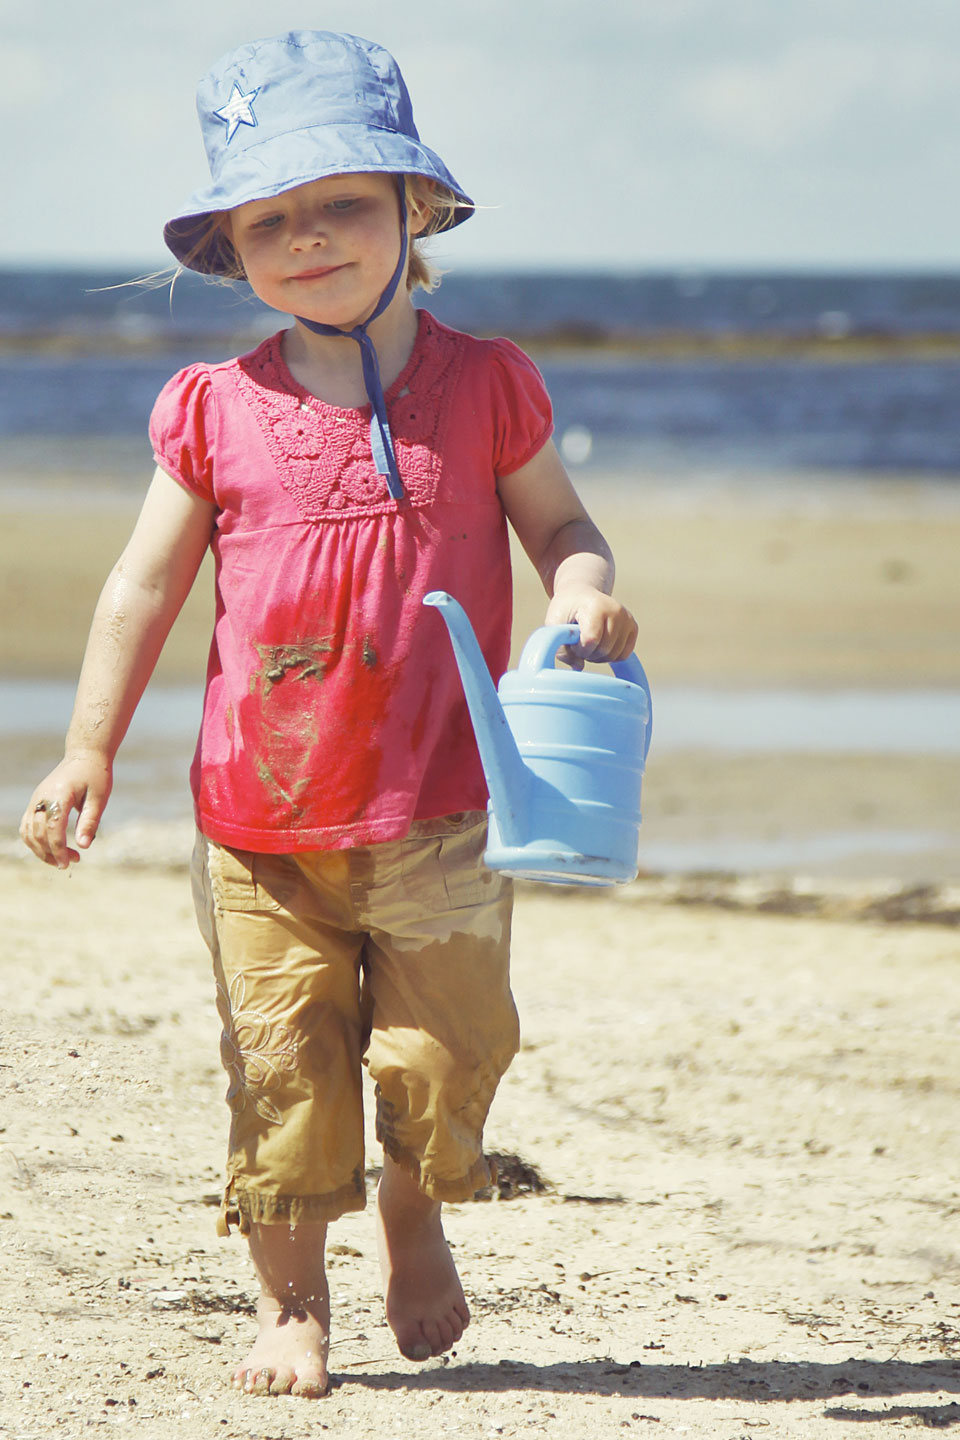 Little toddler carrying bucket of water at the beach!